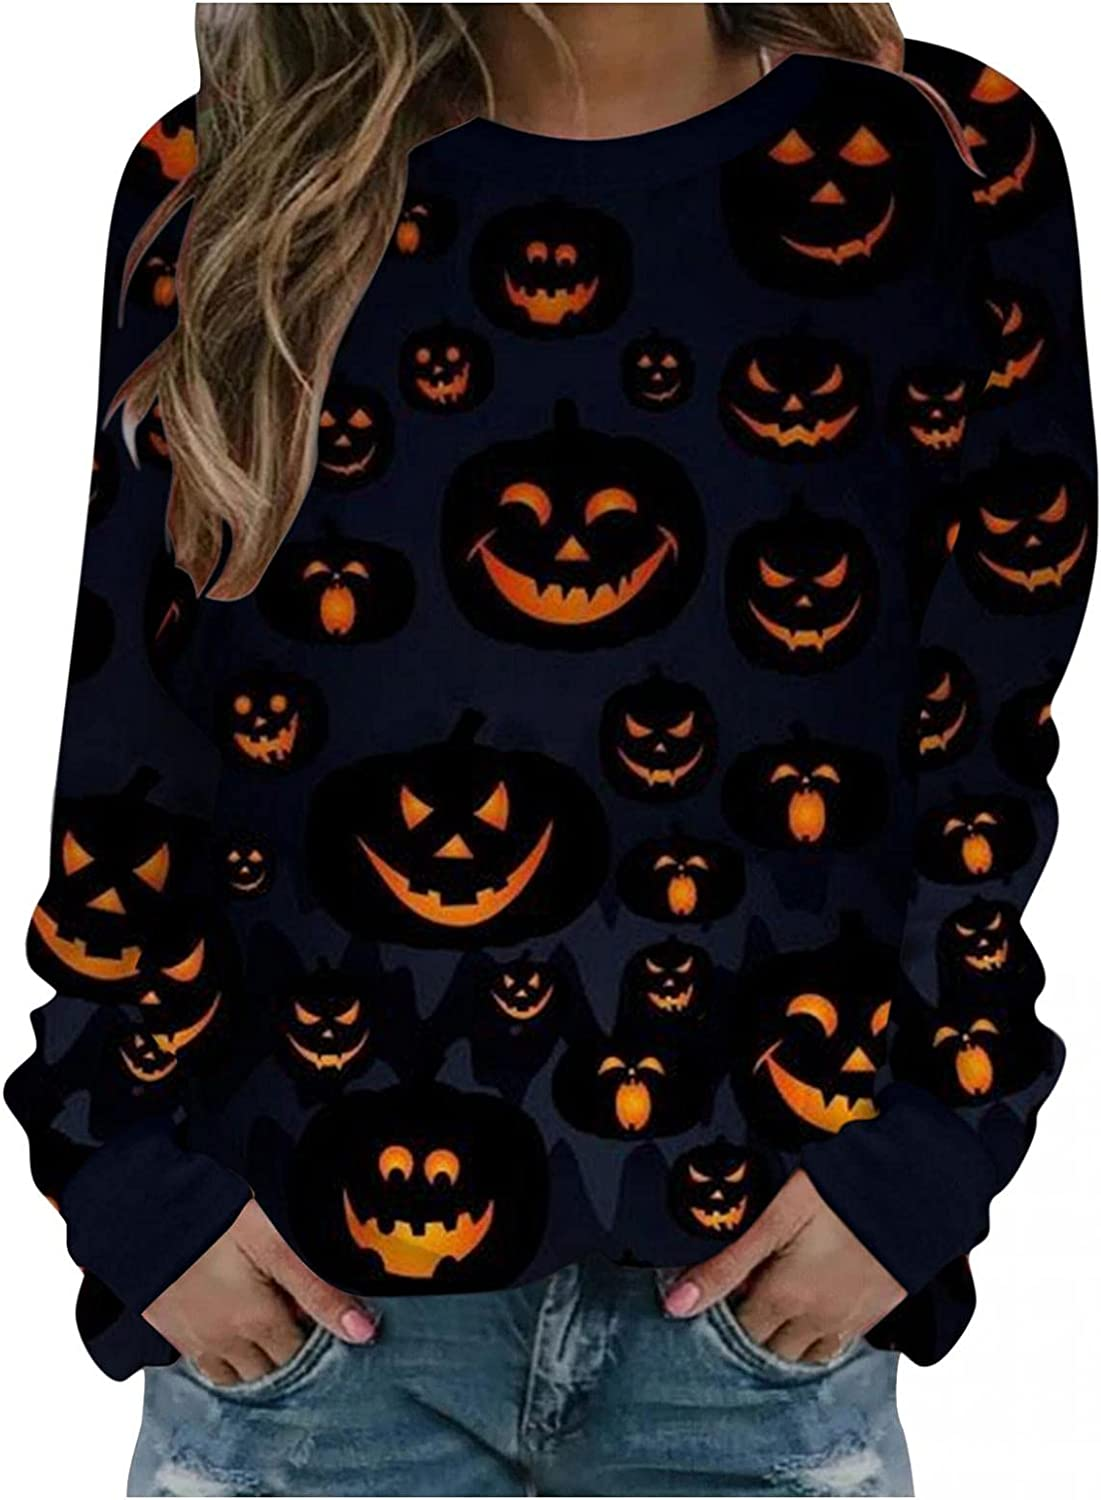 felwors Womens Halloween Sweatshirts, Womens Pumpkin Graphic Pullover Tops Casual Long Sleeve Round Neck Sweaters